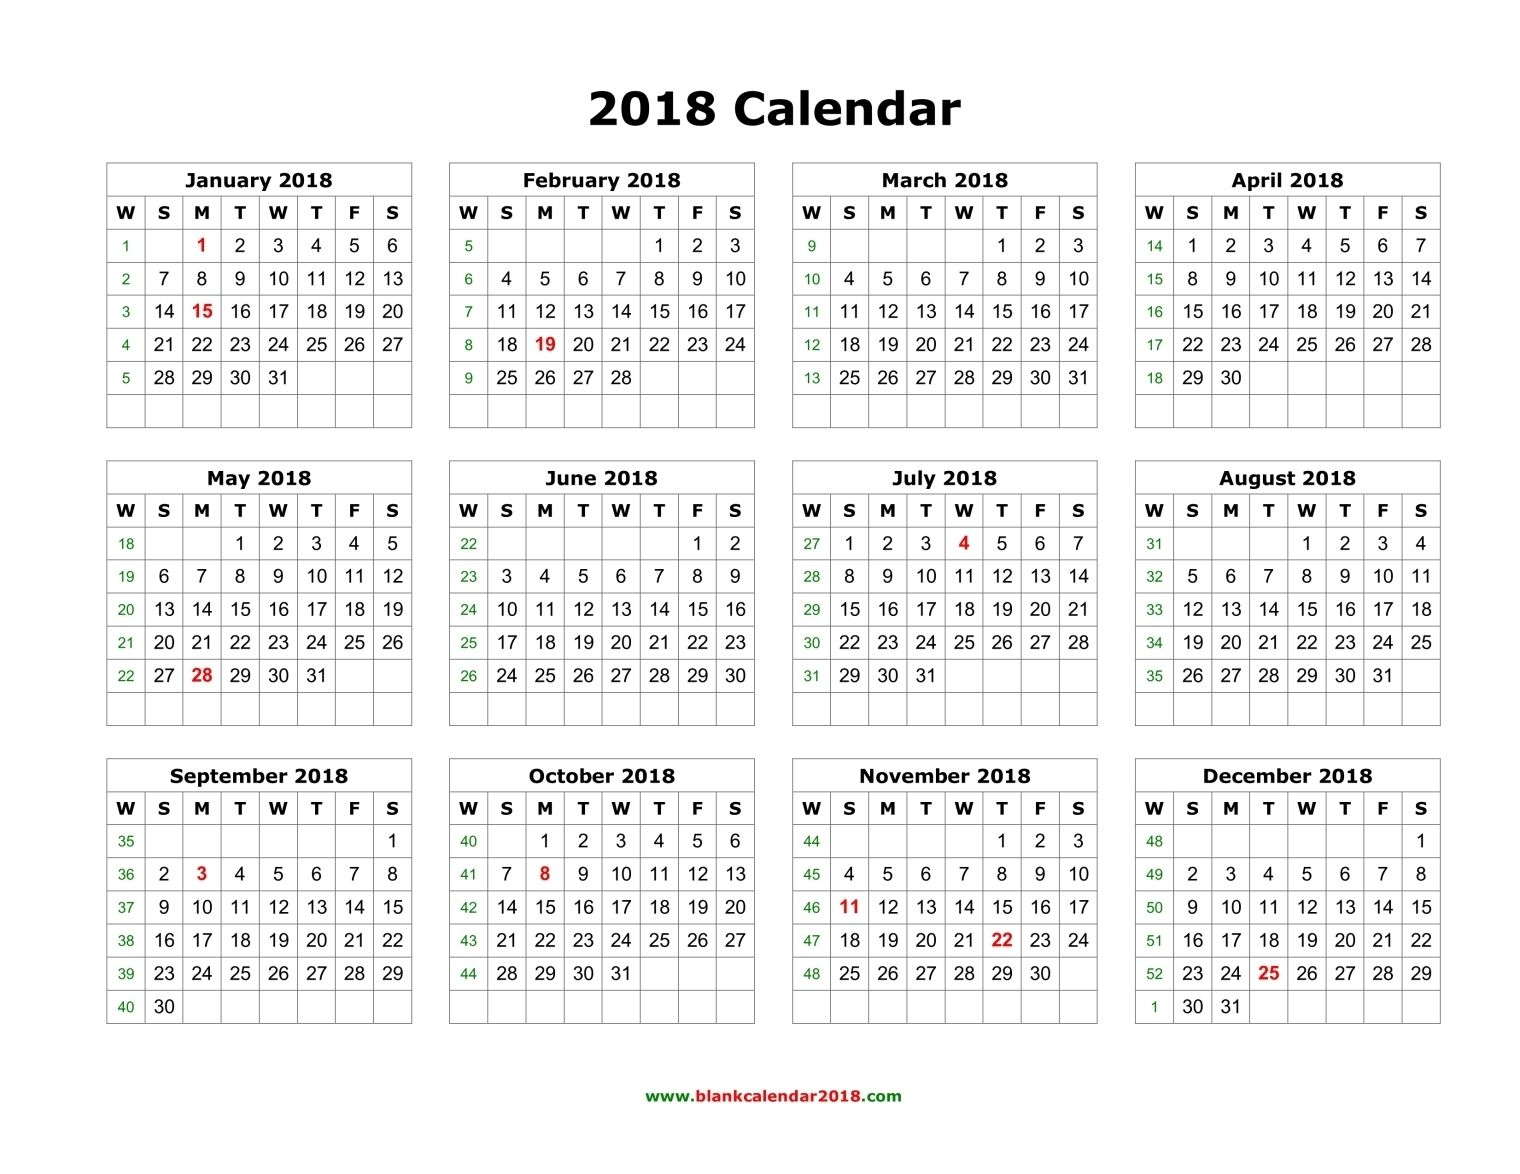 2018 calendar printable yearly 2018 calendar blank